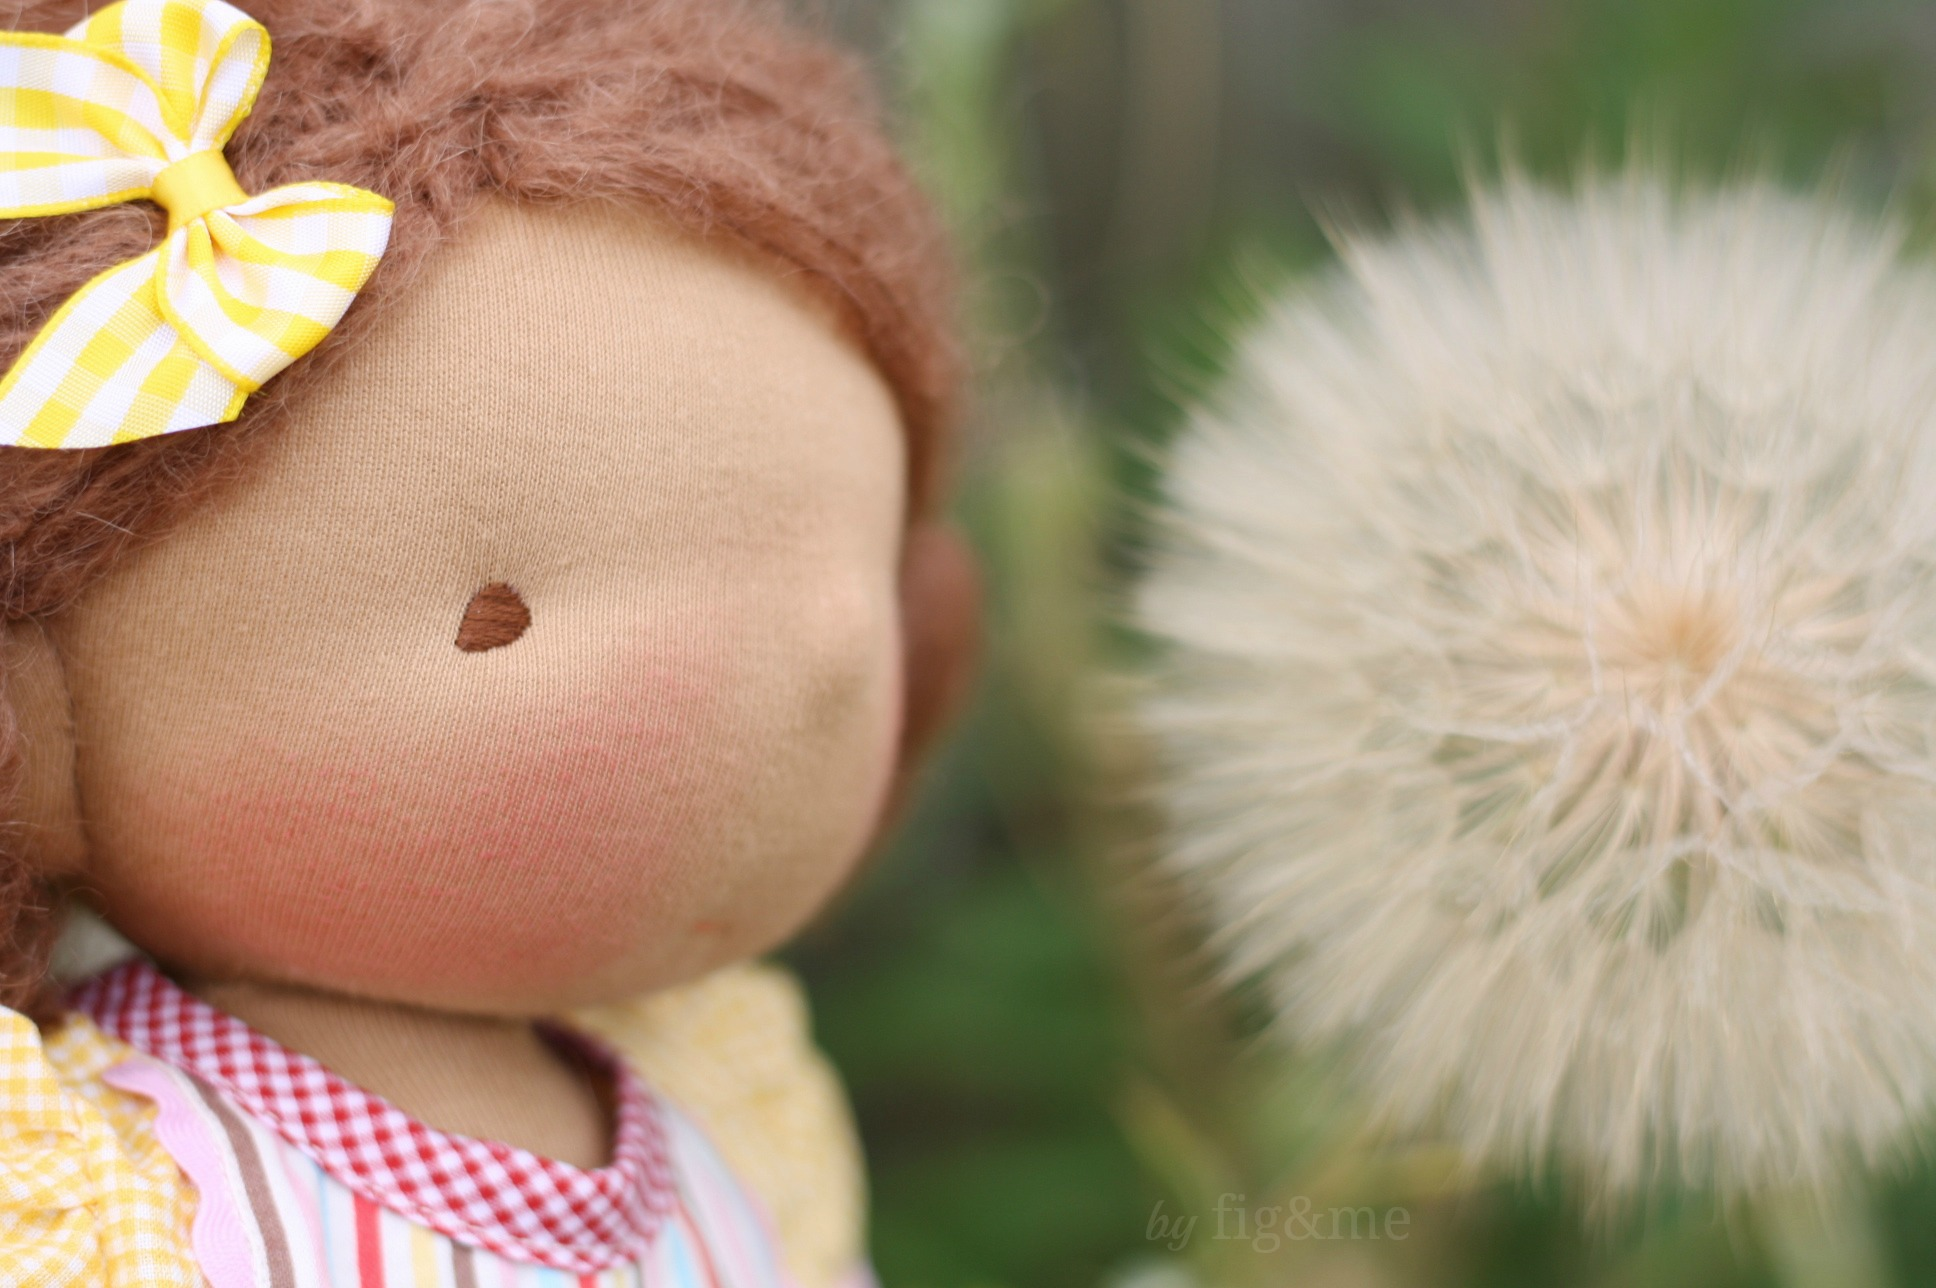 A handmade natural doll by Fig and me.